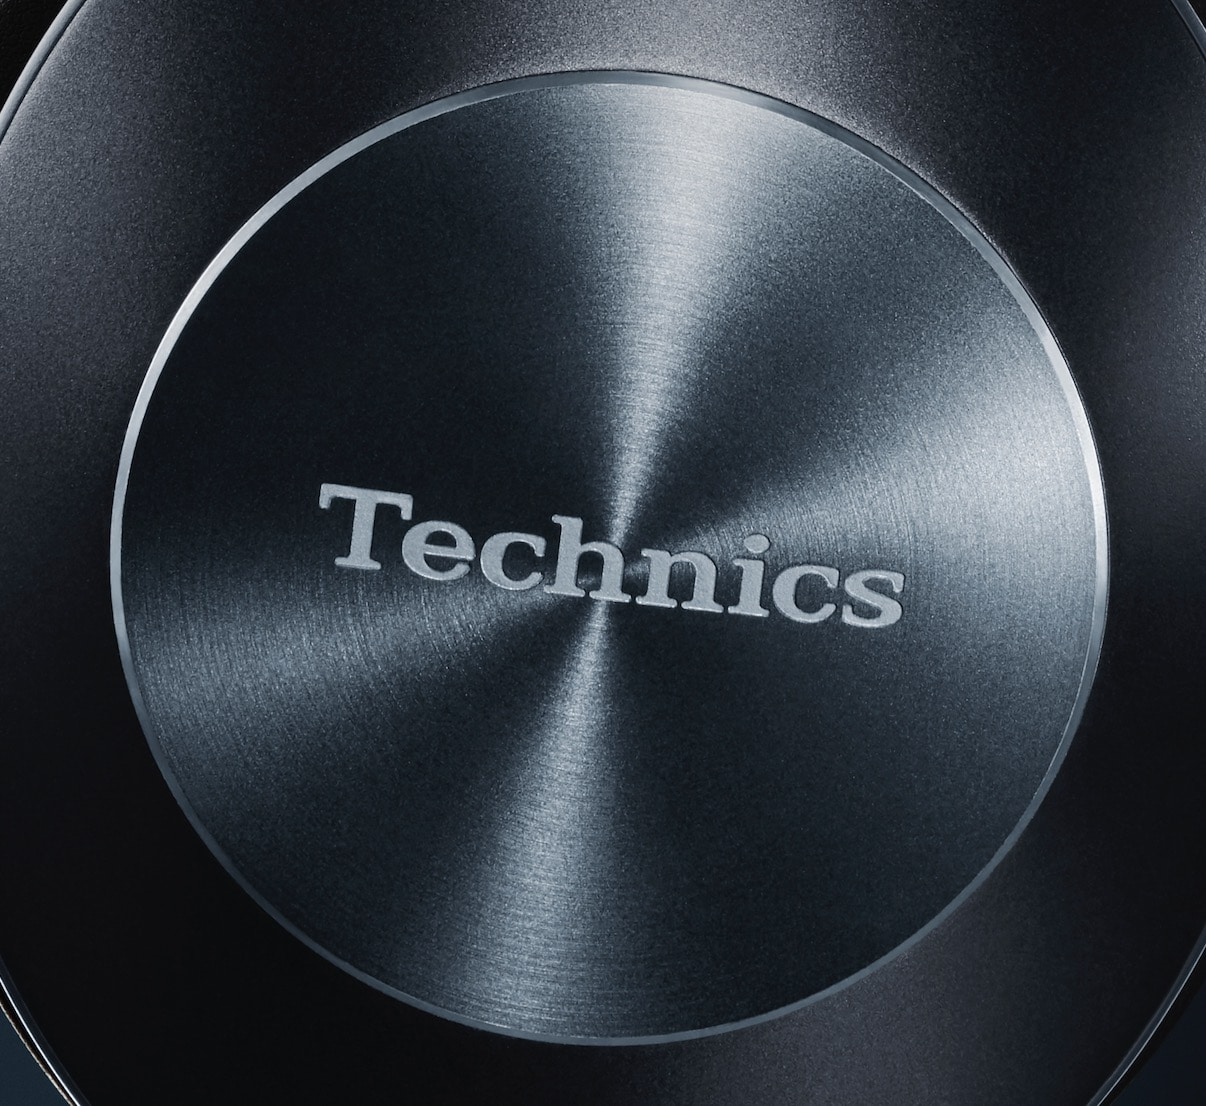 F70N and F50B 'phones From Technics - The Audiophile Man